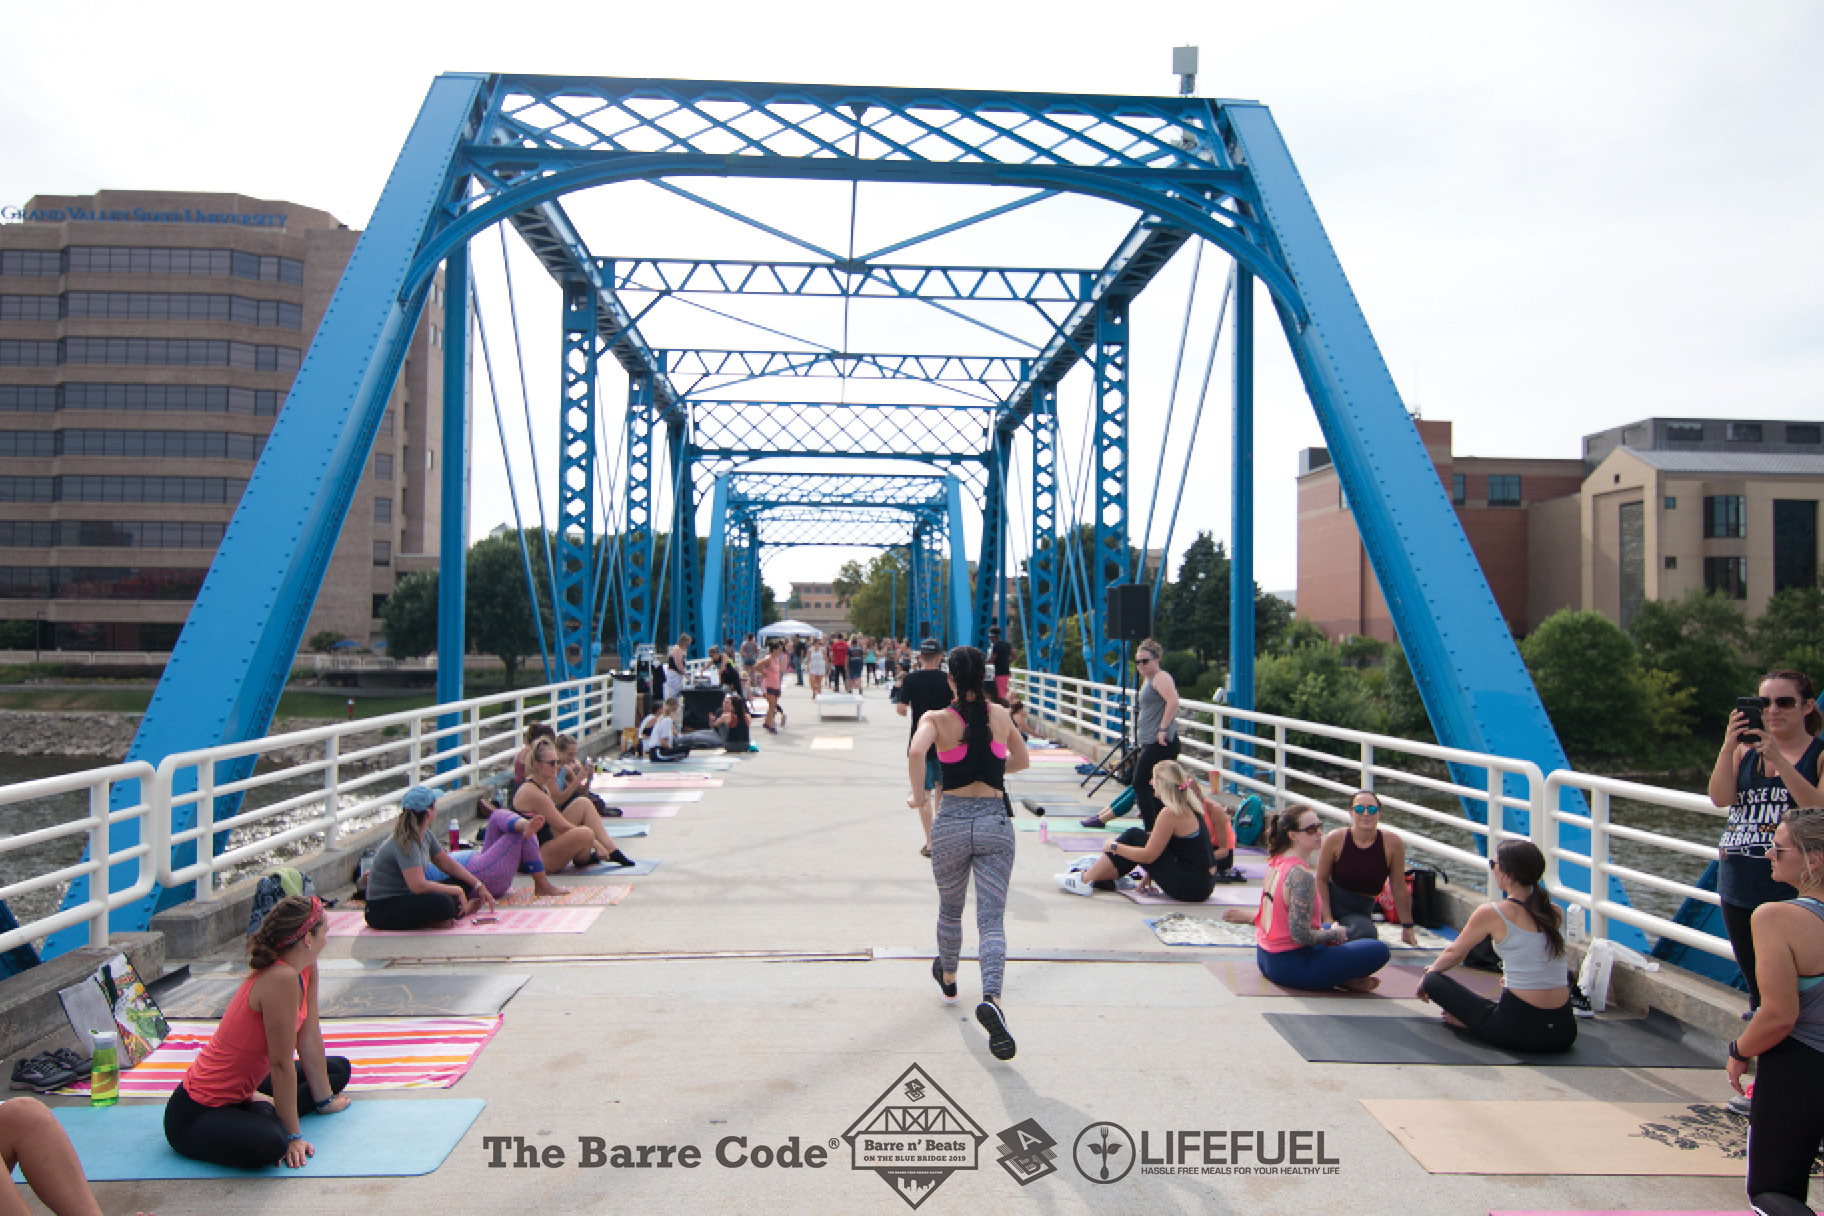 190805_the_barre_code_lifefuel_11.jpg